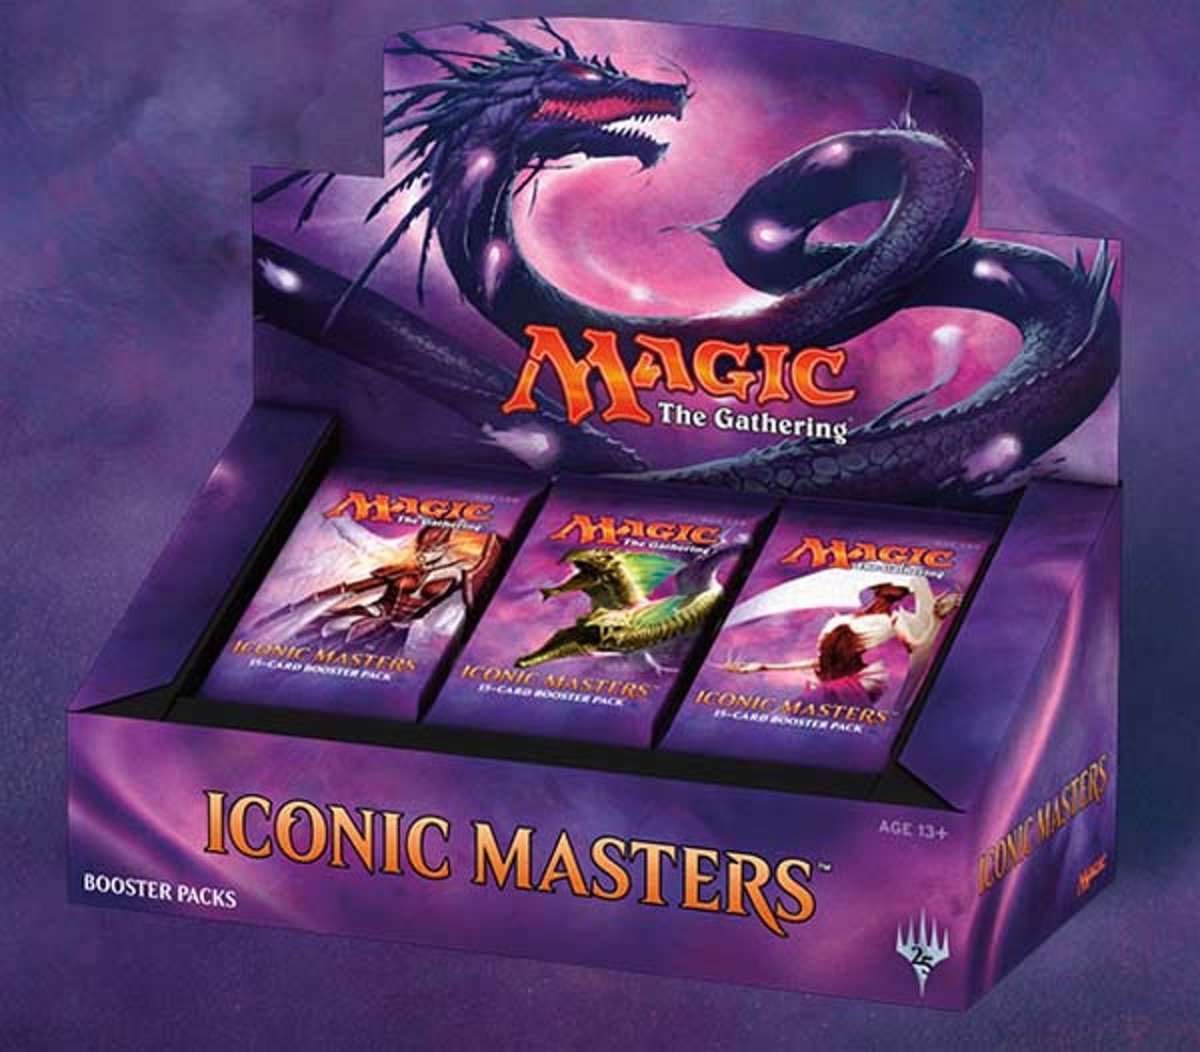 Magic: the Gathering, Iconic Masters Booster Display